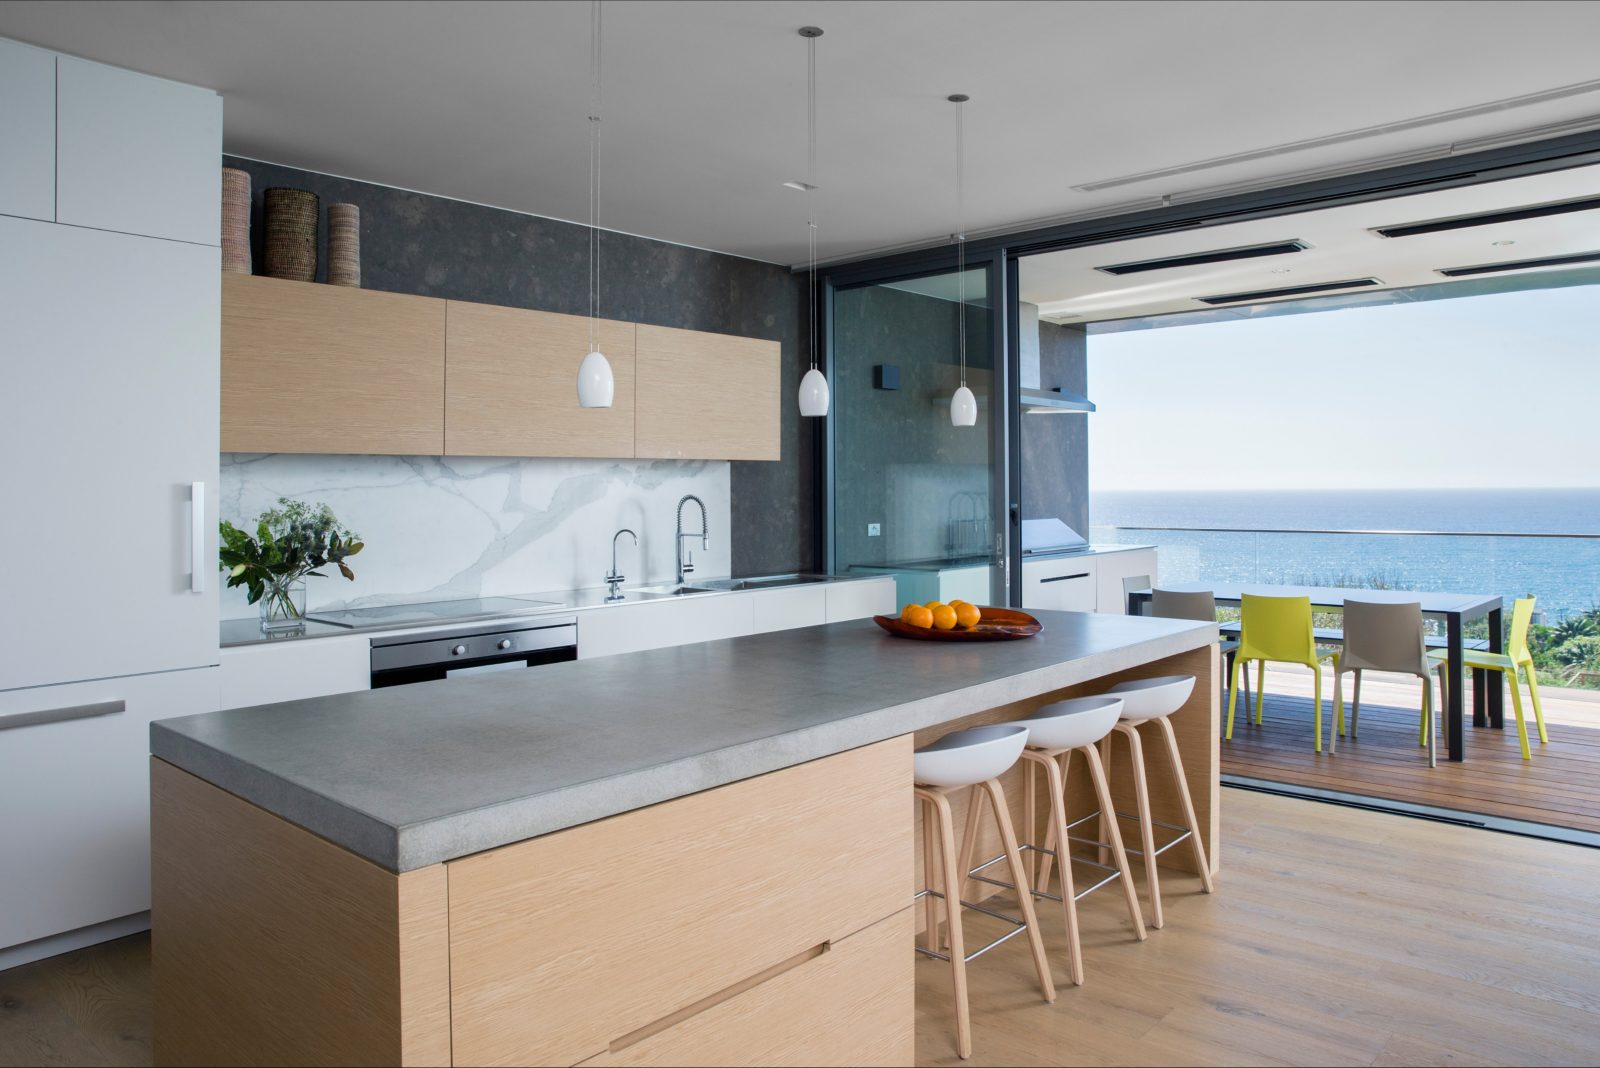 Open plan kitchen with access to large terrace with dining area and seaview